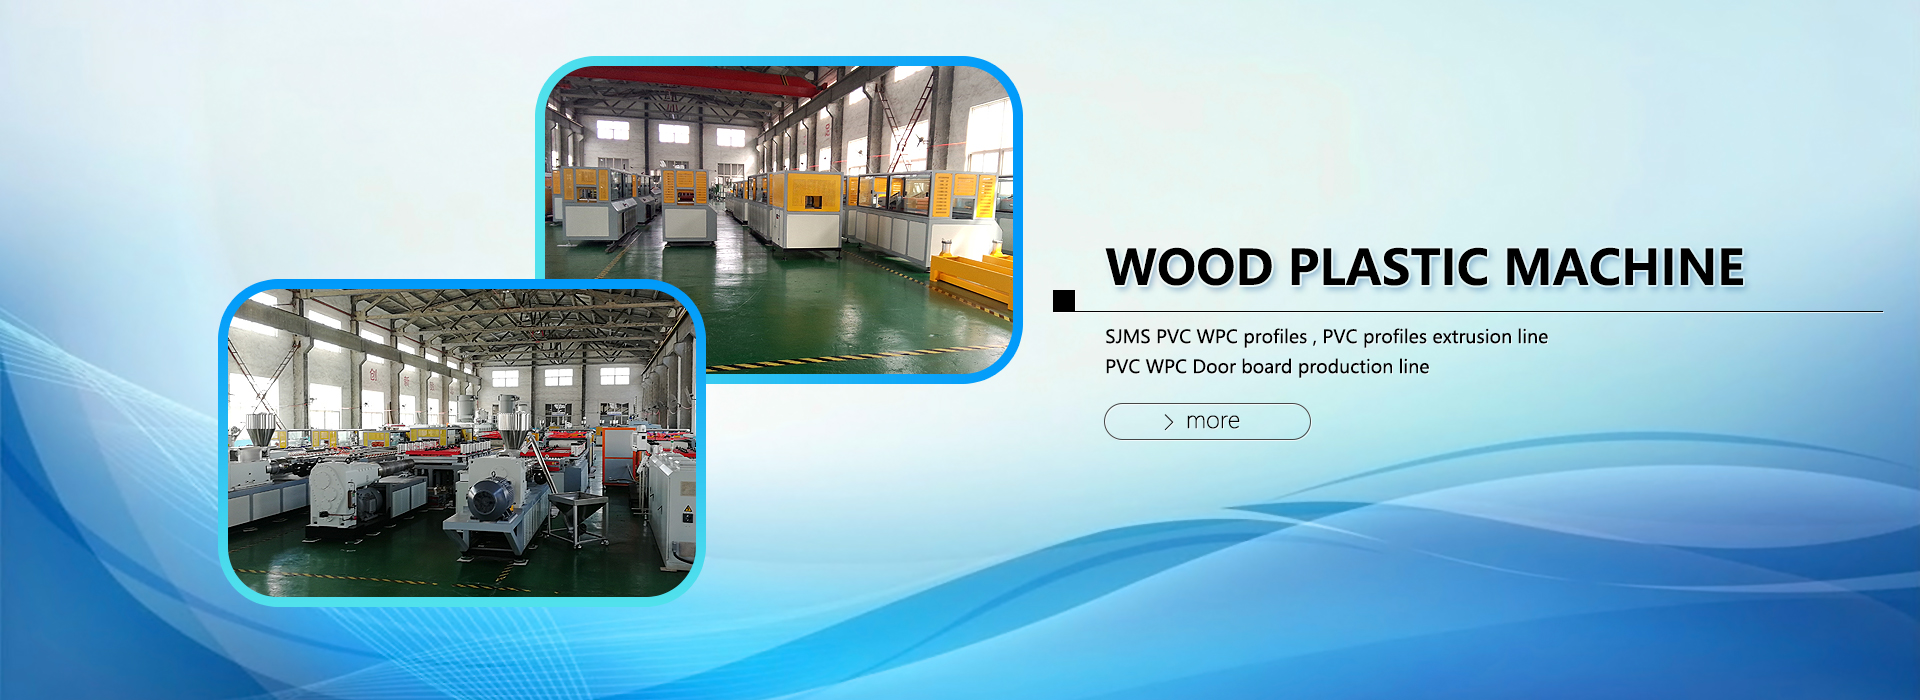 Wood plastic